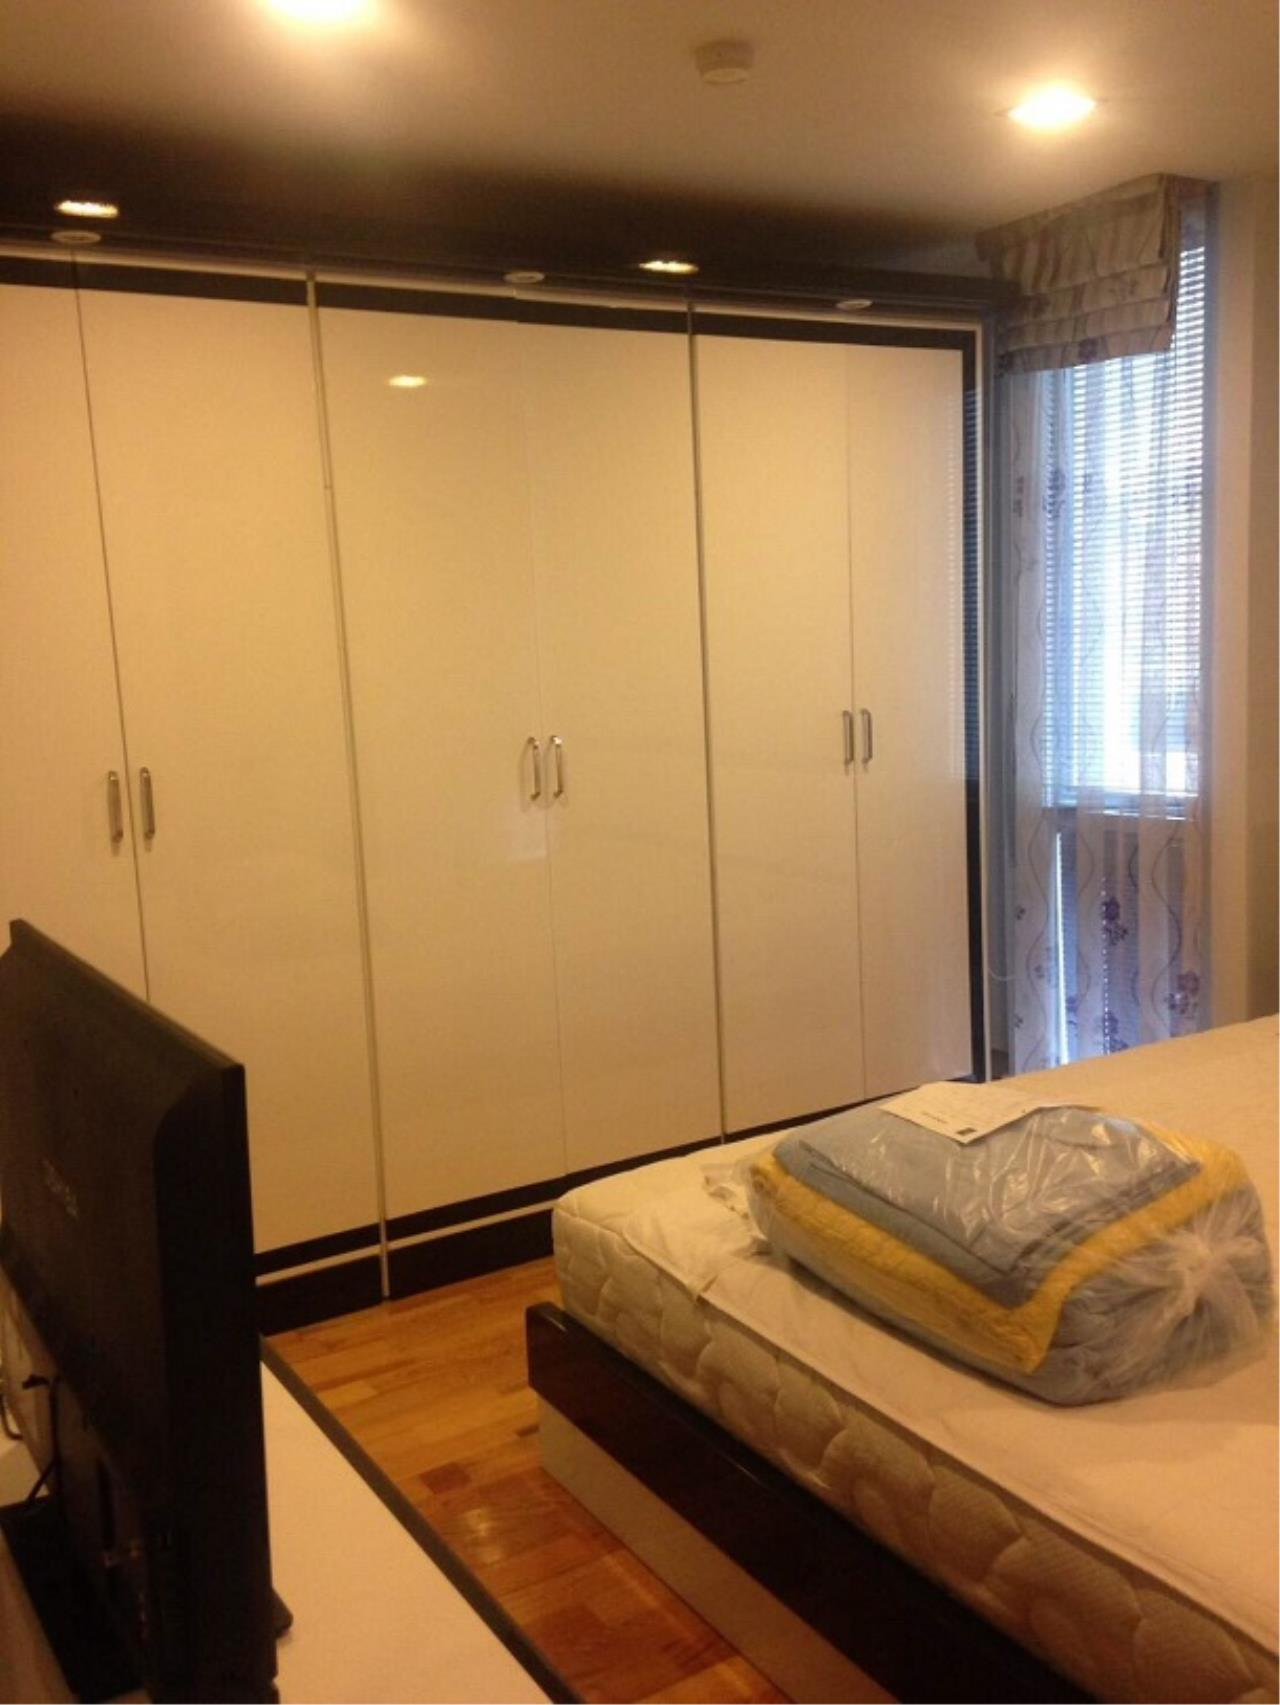 RE/MAX All Star Realty Agency's Quad Silom for sale/rent fully furnished (BTS Chong Nonsi) 8